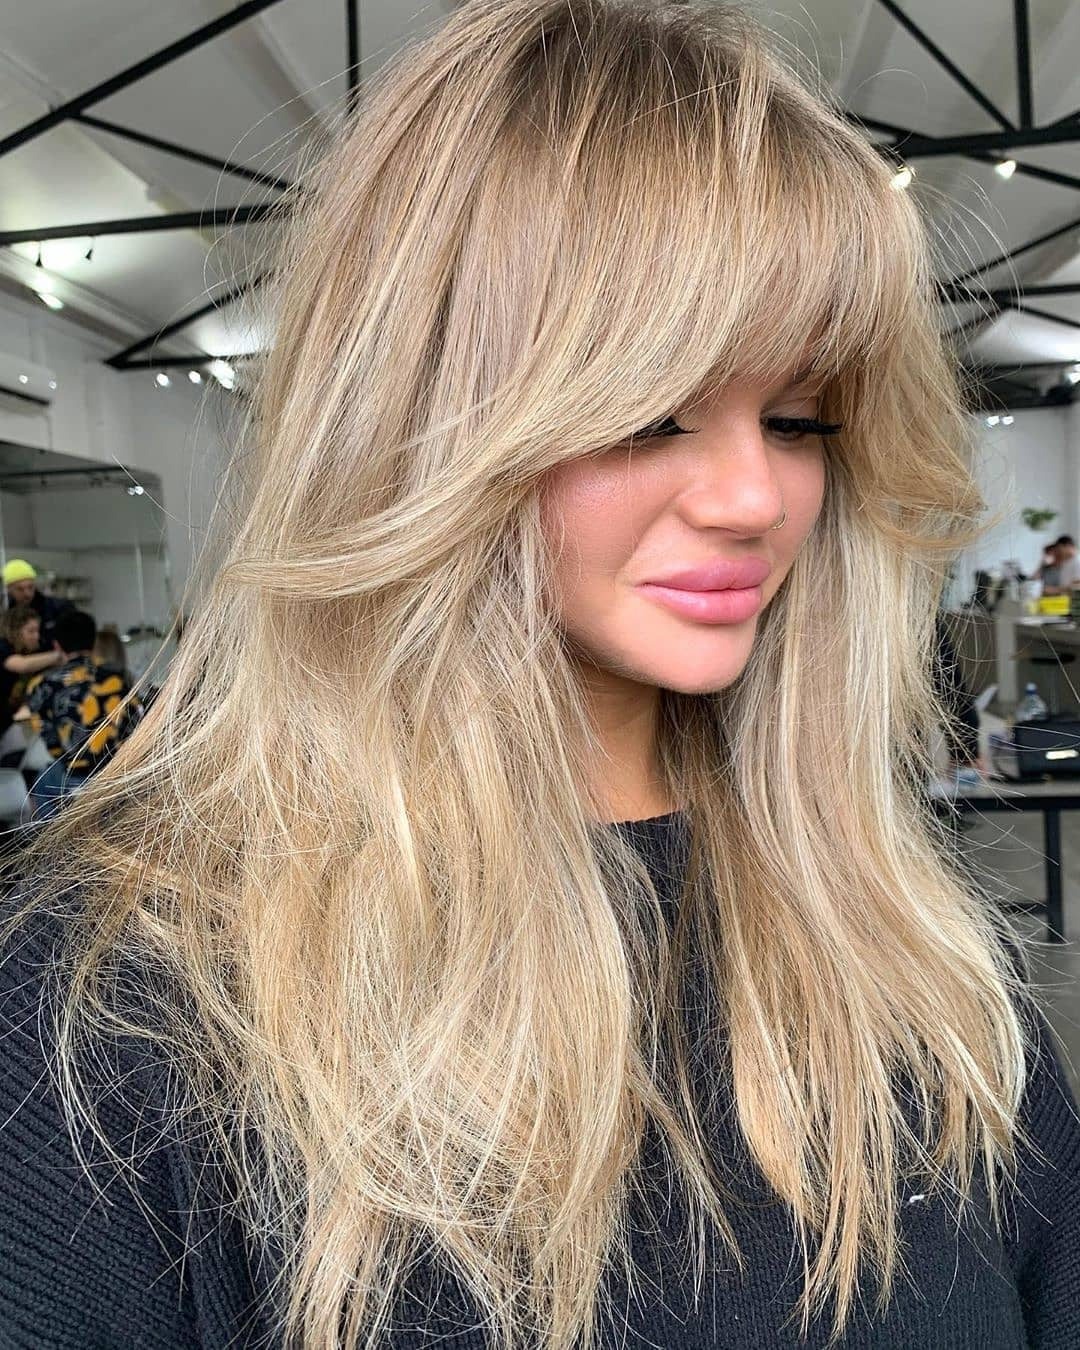 Messy Long Hair with Angled Bangs